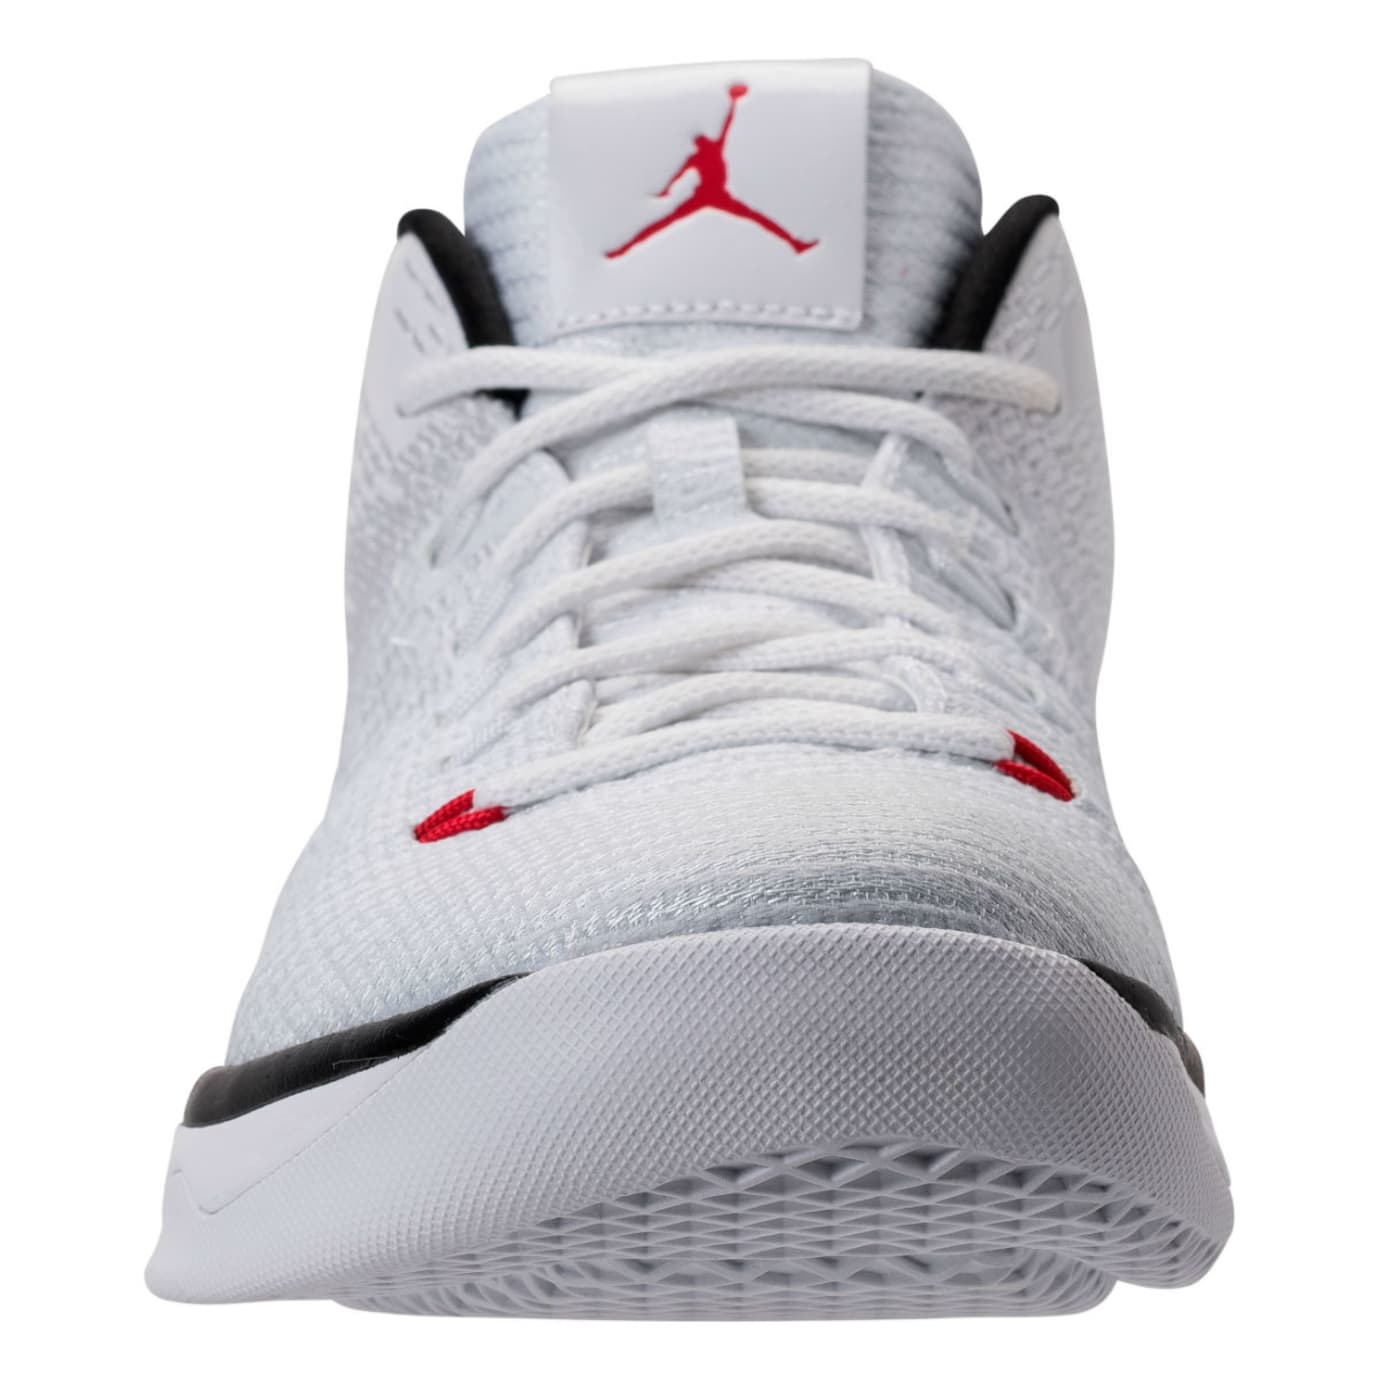 huge selection of 59e83 e9808 Air Jordan 31 Low Bulls Release Date Front 897564-101